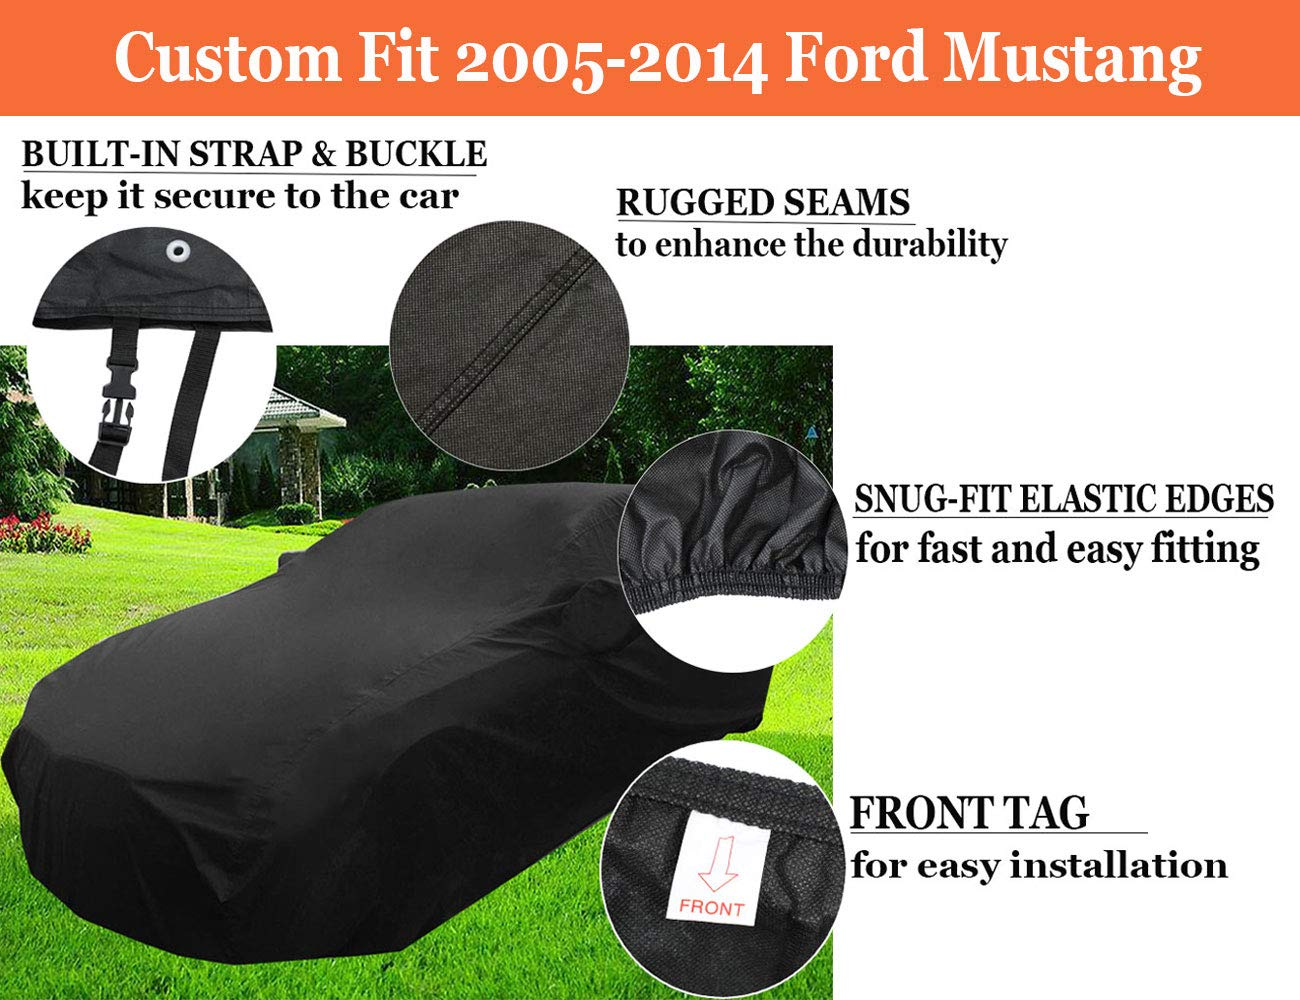 Durable Vehicle Cover for Indoor Garage Storage iiSPORT Scratch Proof Car Cover Custom Fit 2005-2014 Ford Mustang Last The Life of Vehicle 1-Year Warranty Windproof /& Dustproof